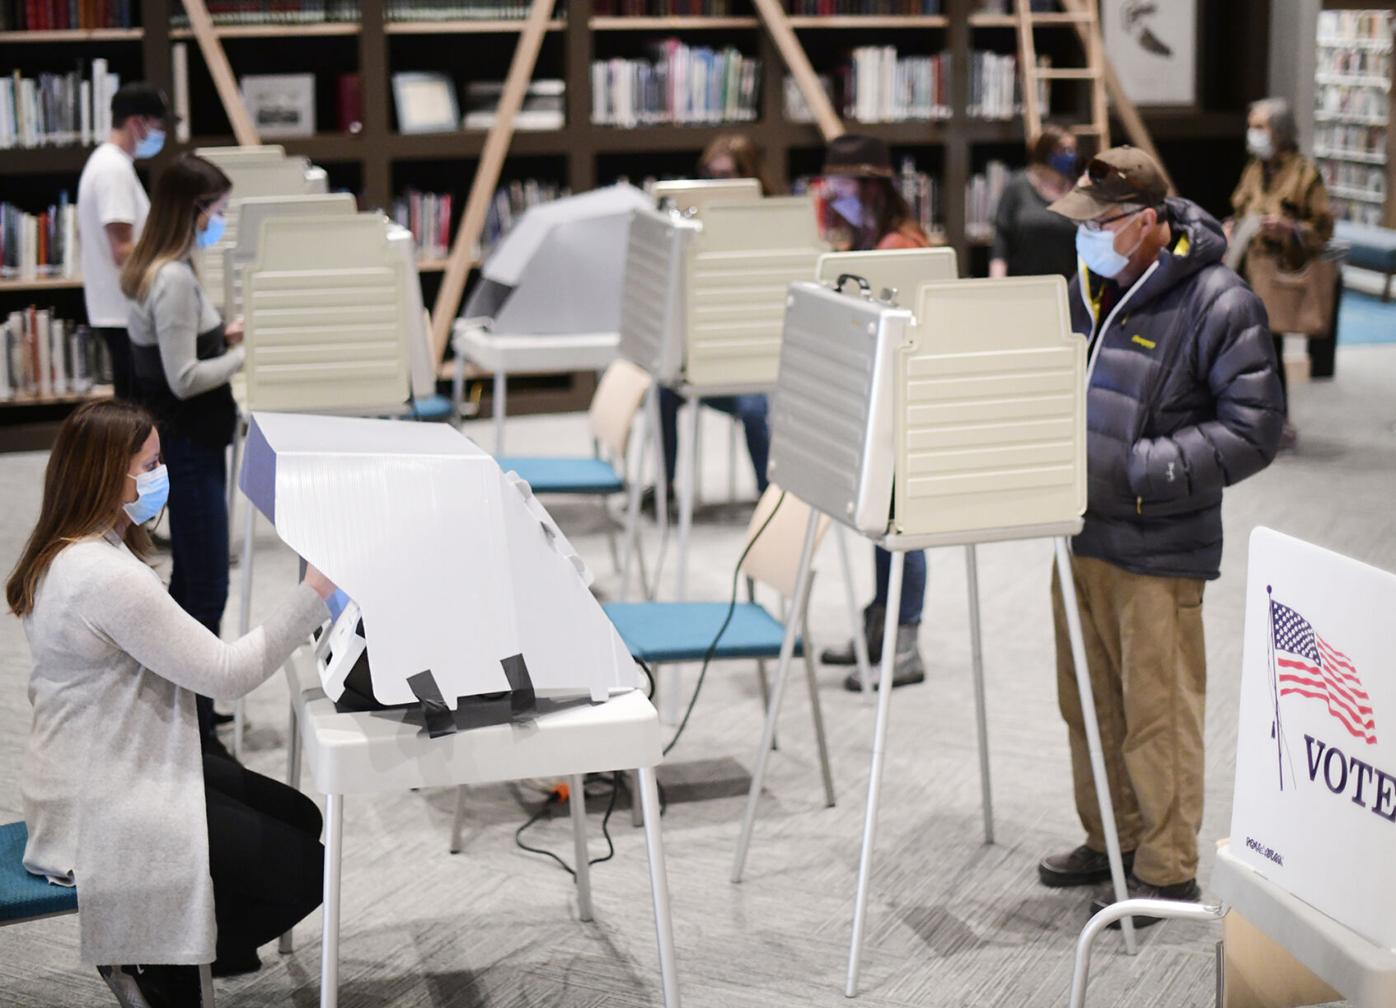 Voting, Community Library